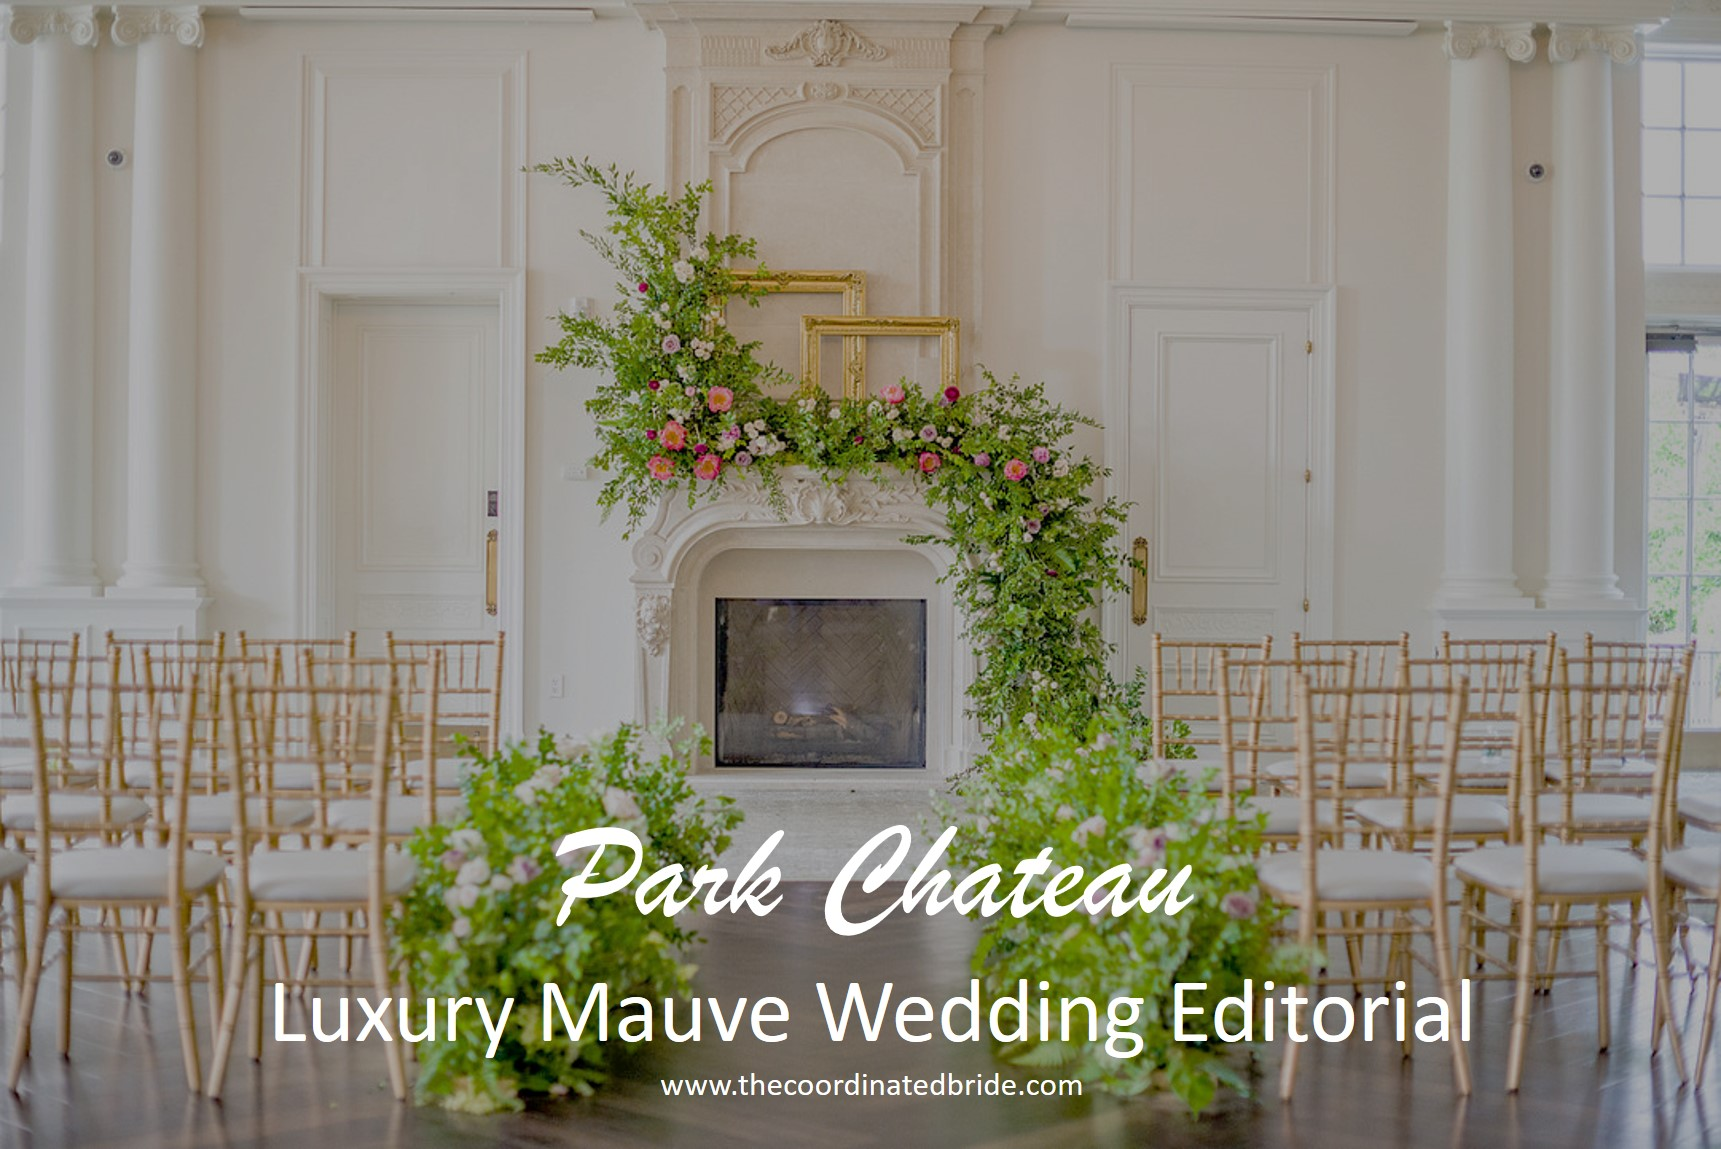 Luxury Mauve Inspired Wedding Editorial at New Jersey's Park Chateau